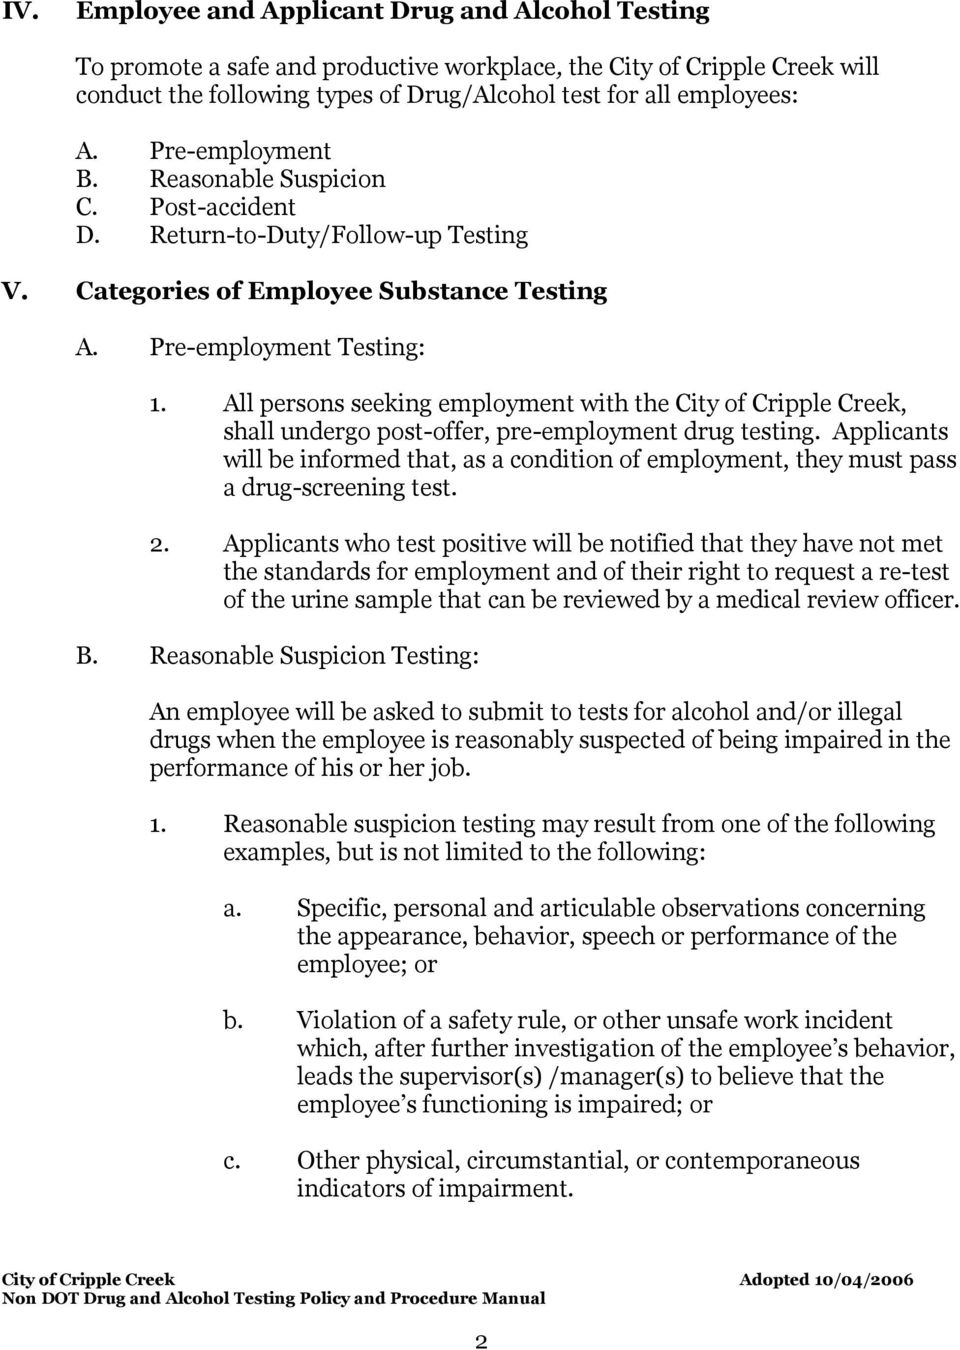 All persons seeking employment with the City of Cripple Creek, shall undergo post-offer, pre-employment drug testing.